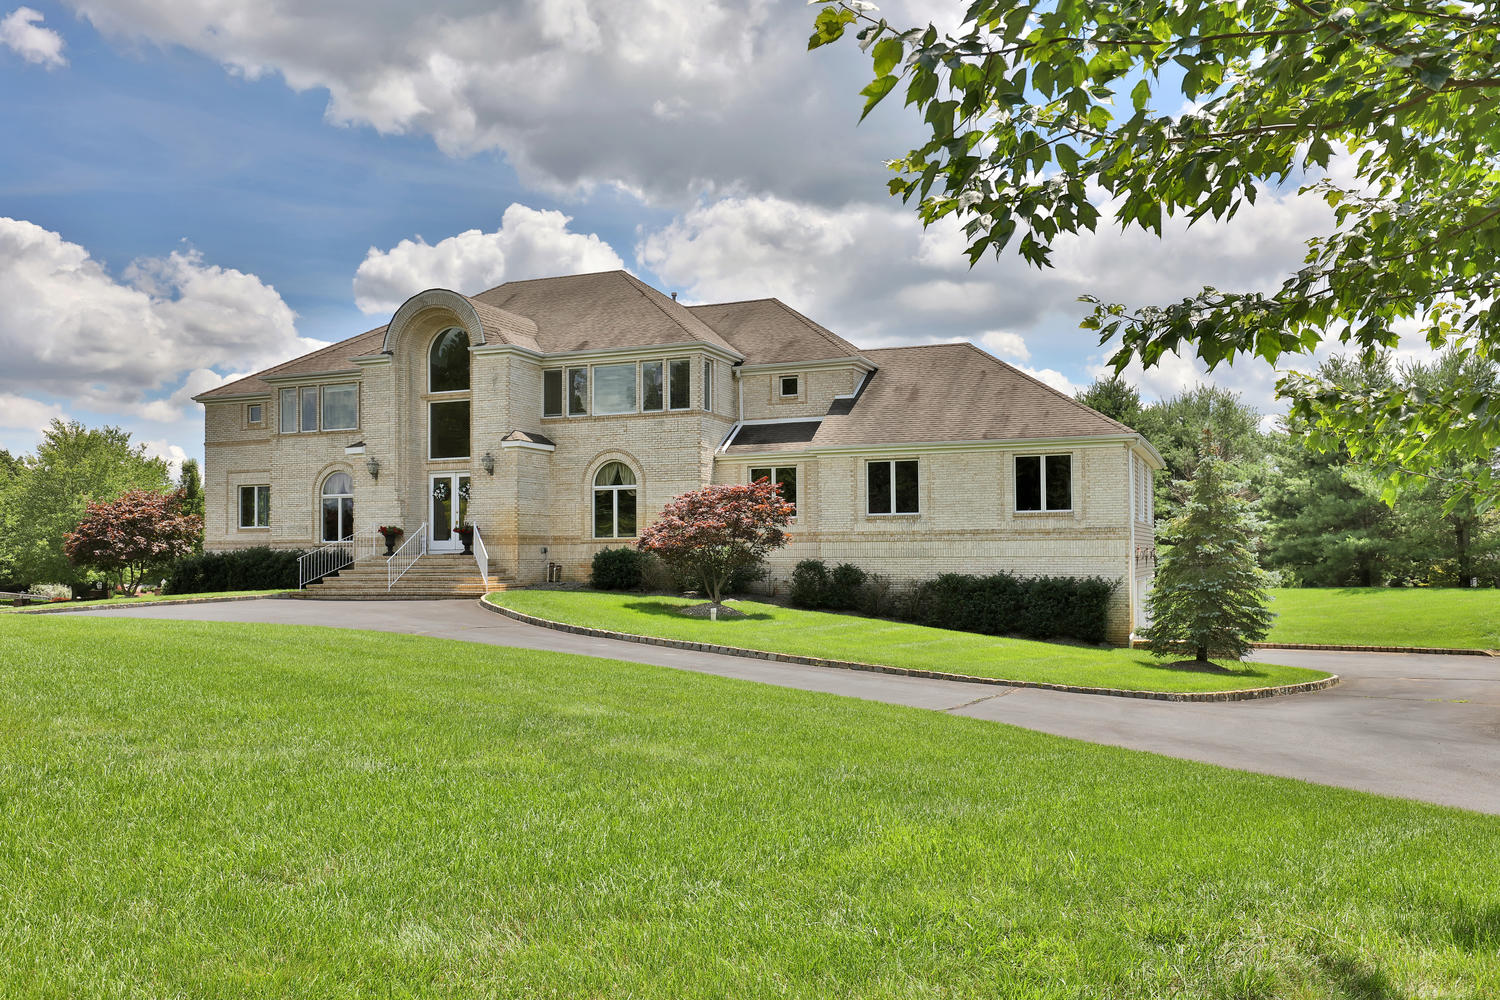 Single Family Home for Sale at Spectacular Custom Colonial 1 Old Stable Way Colts Neck, New Jersey 07722 United States